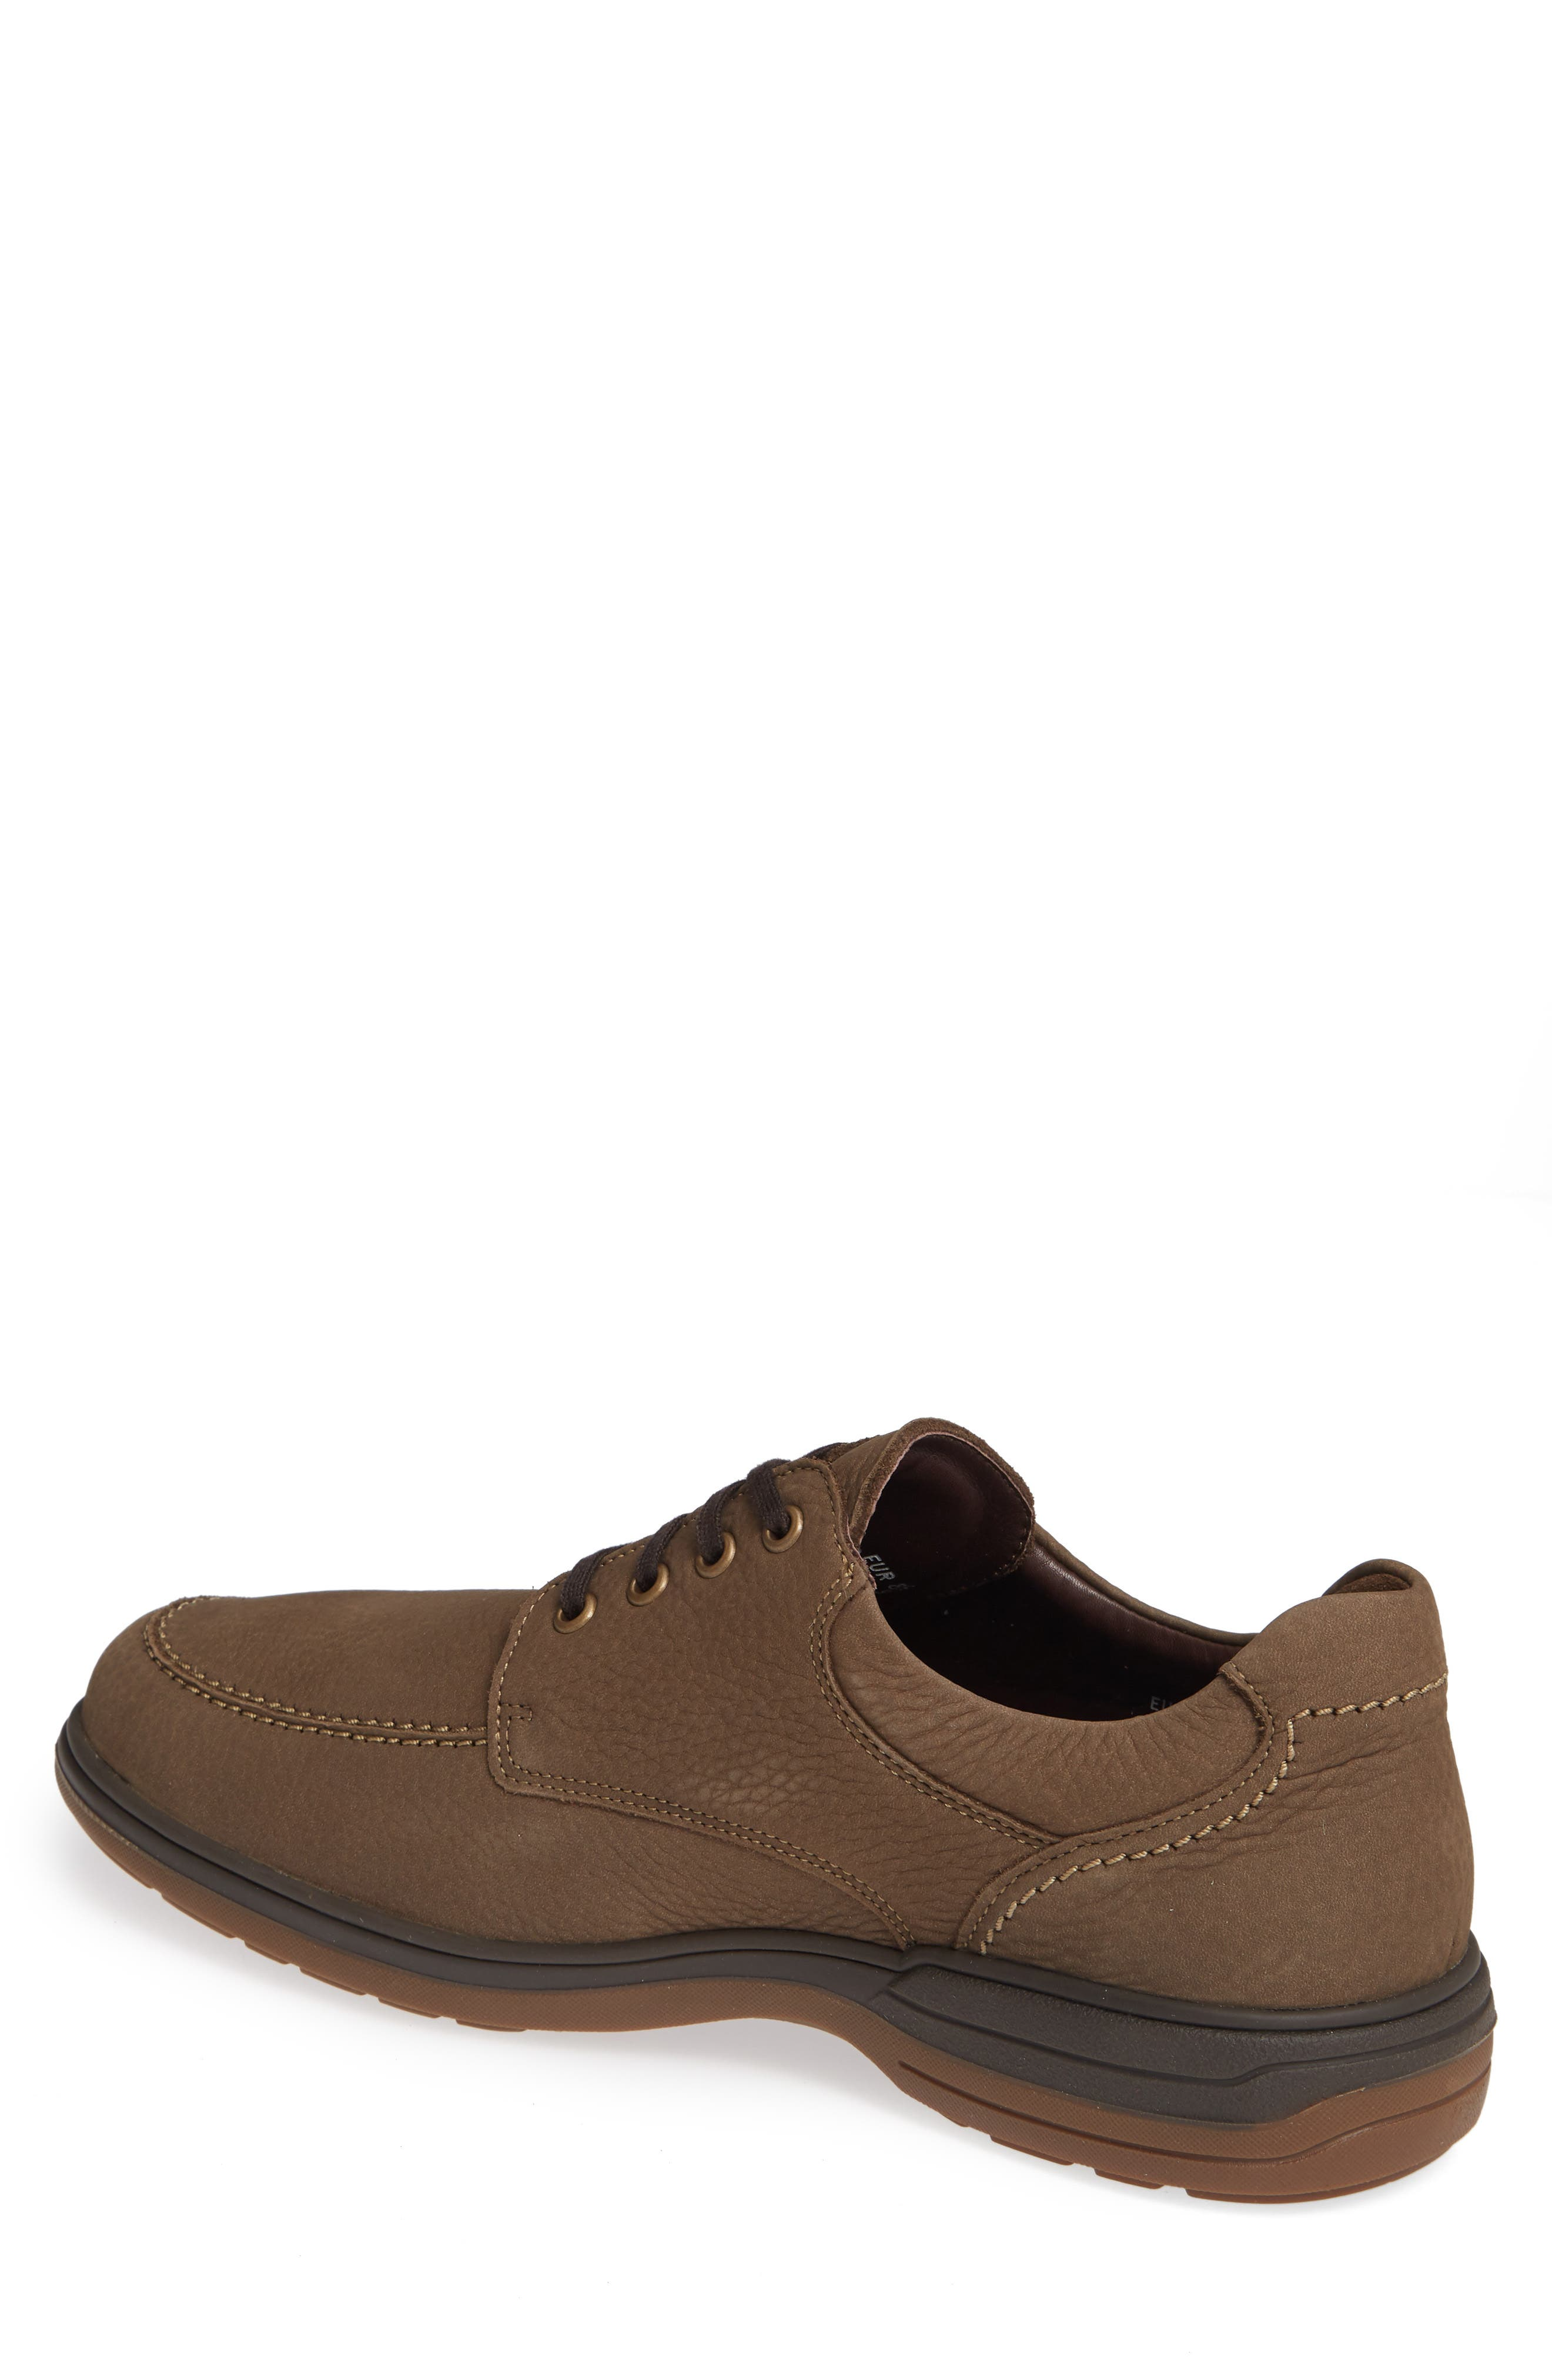 Douk HydroProtect Waterproof Moc Toe Derby,                             Alternate thumbnail 2, color,                             CAMEL SPORTBUCK